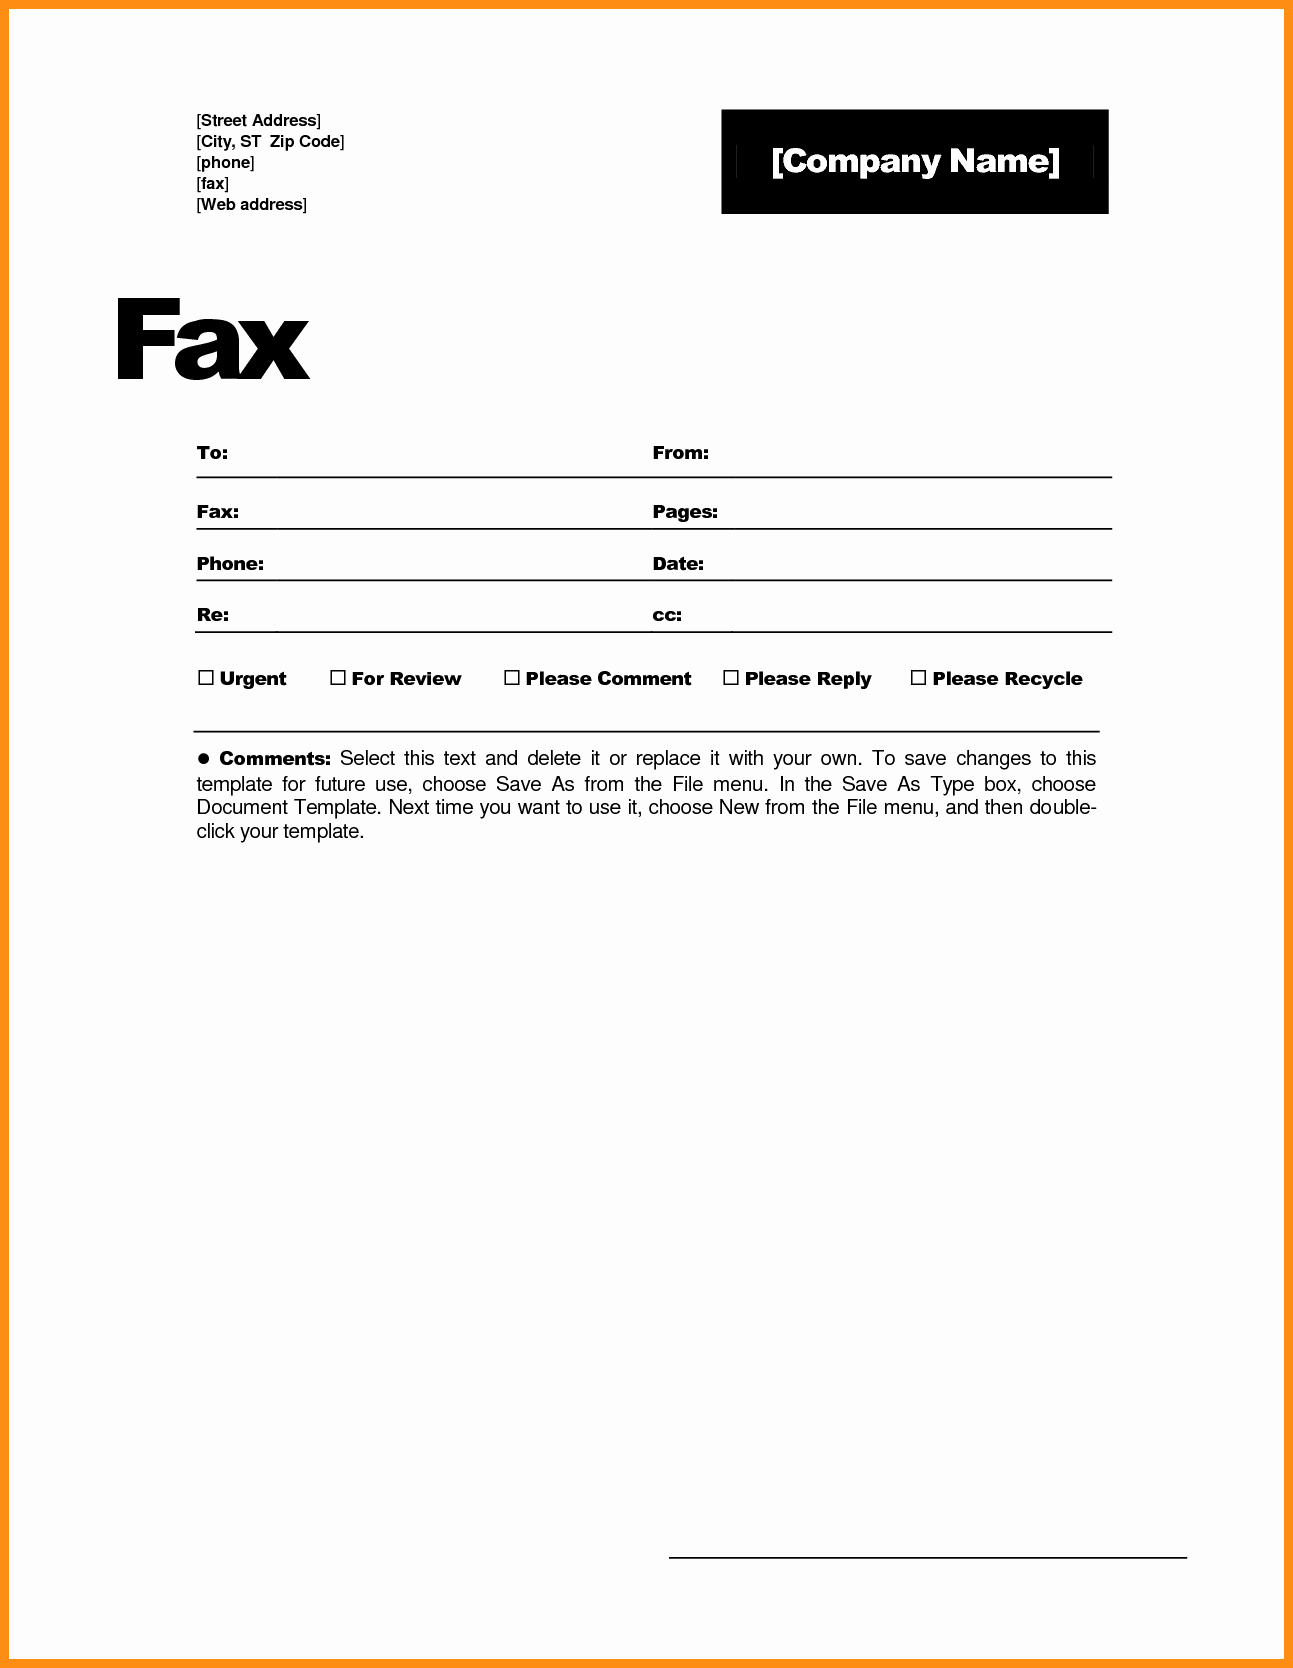 Printable Free Fax Cover Sheets Luxury 6 Free Fax Cover Sheet Template Word